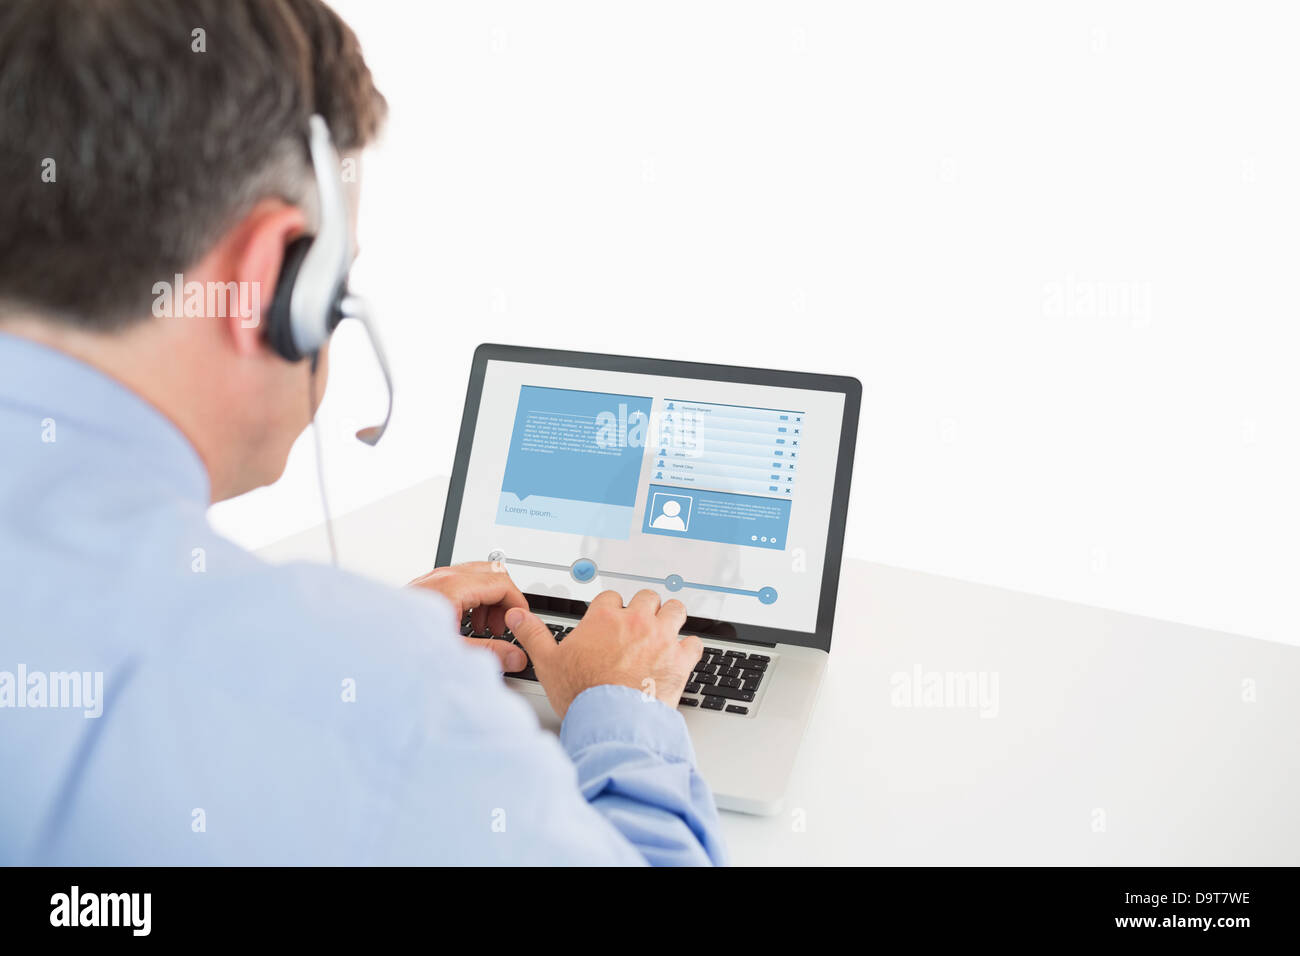 Call center worker viewing his social media profile - Stock Image